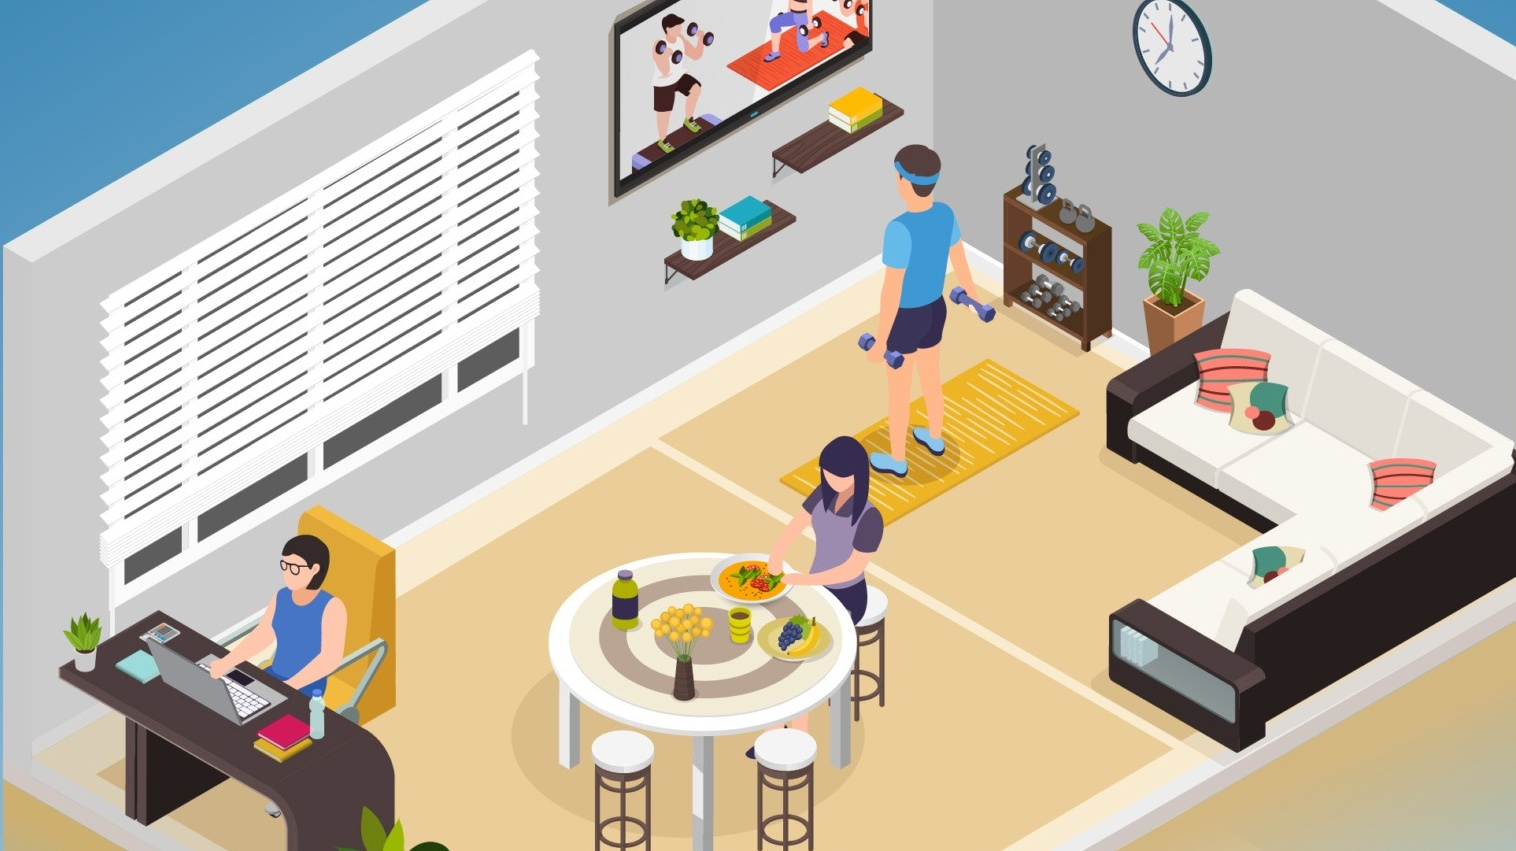 multi-purpose capabilities of the HomeByMe for Home Retailers 3D planning solution